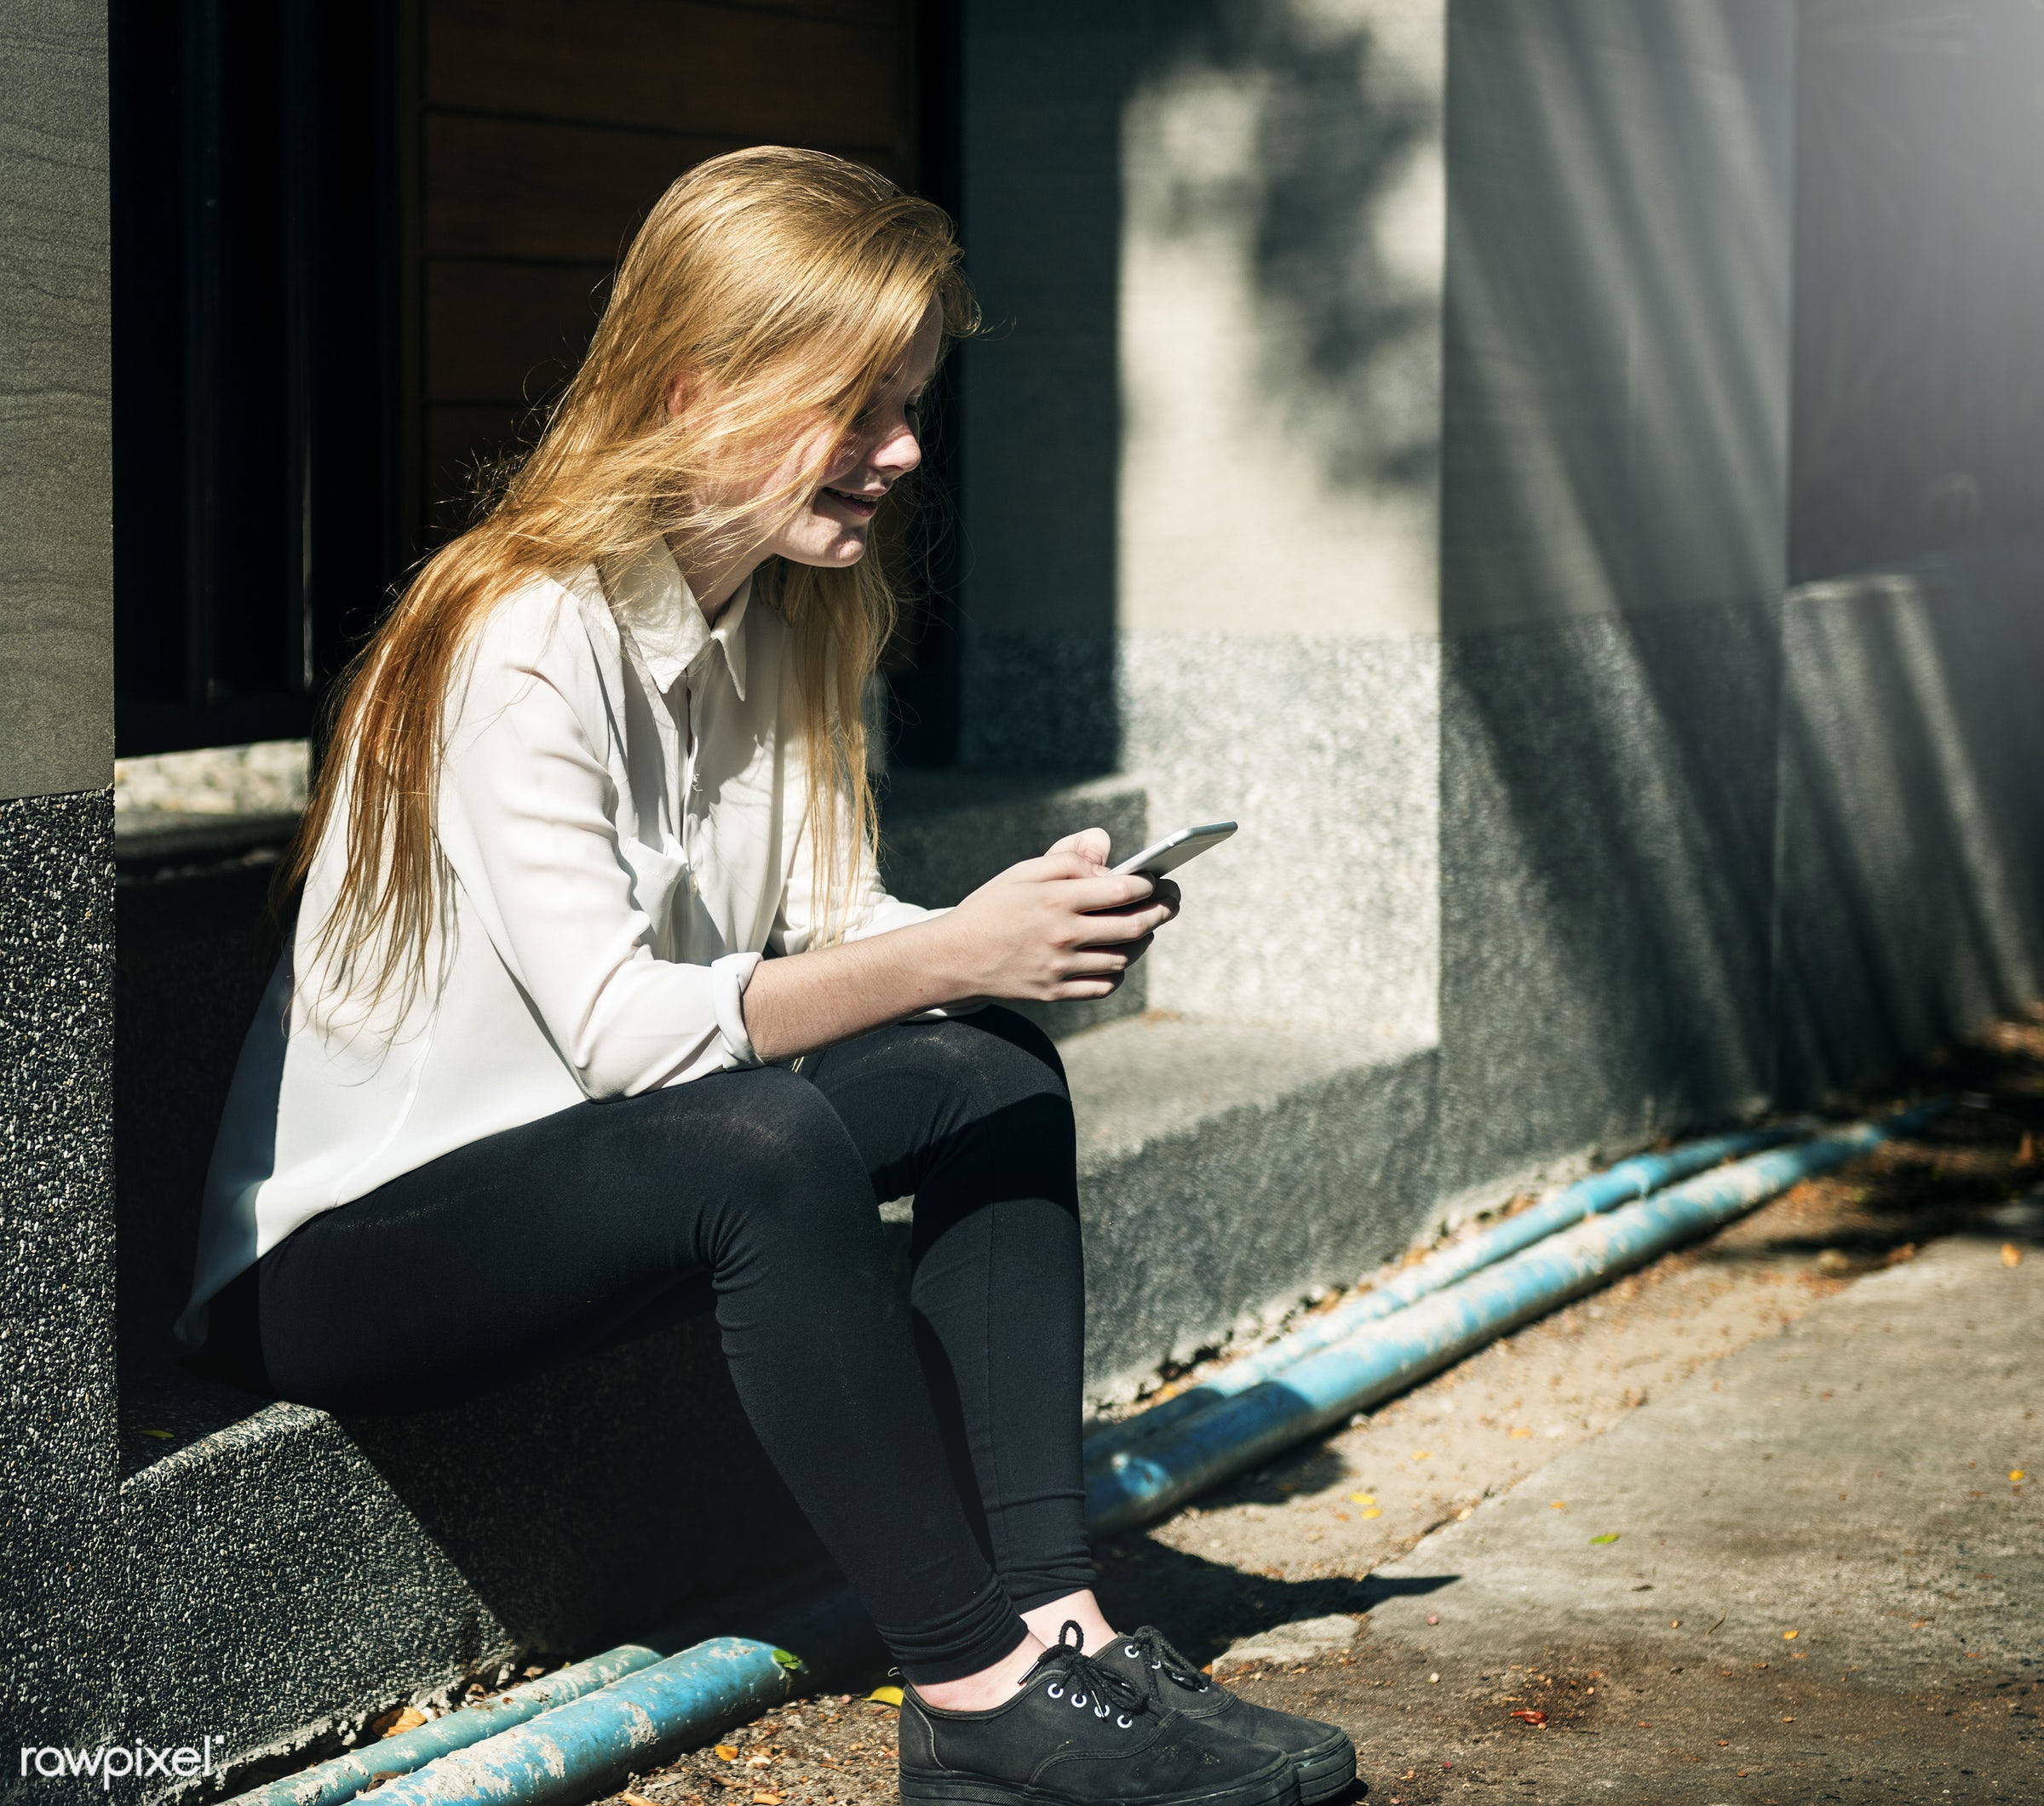 alone, attractive, casual, cheerful, connect, connecting, connection, day, device, digital, enjoyment, experience, fashion,...